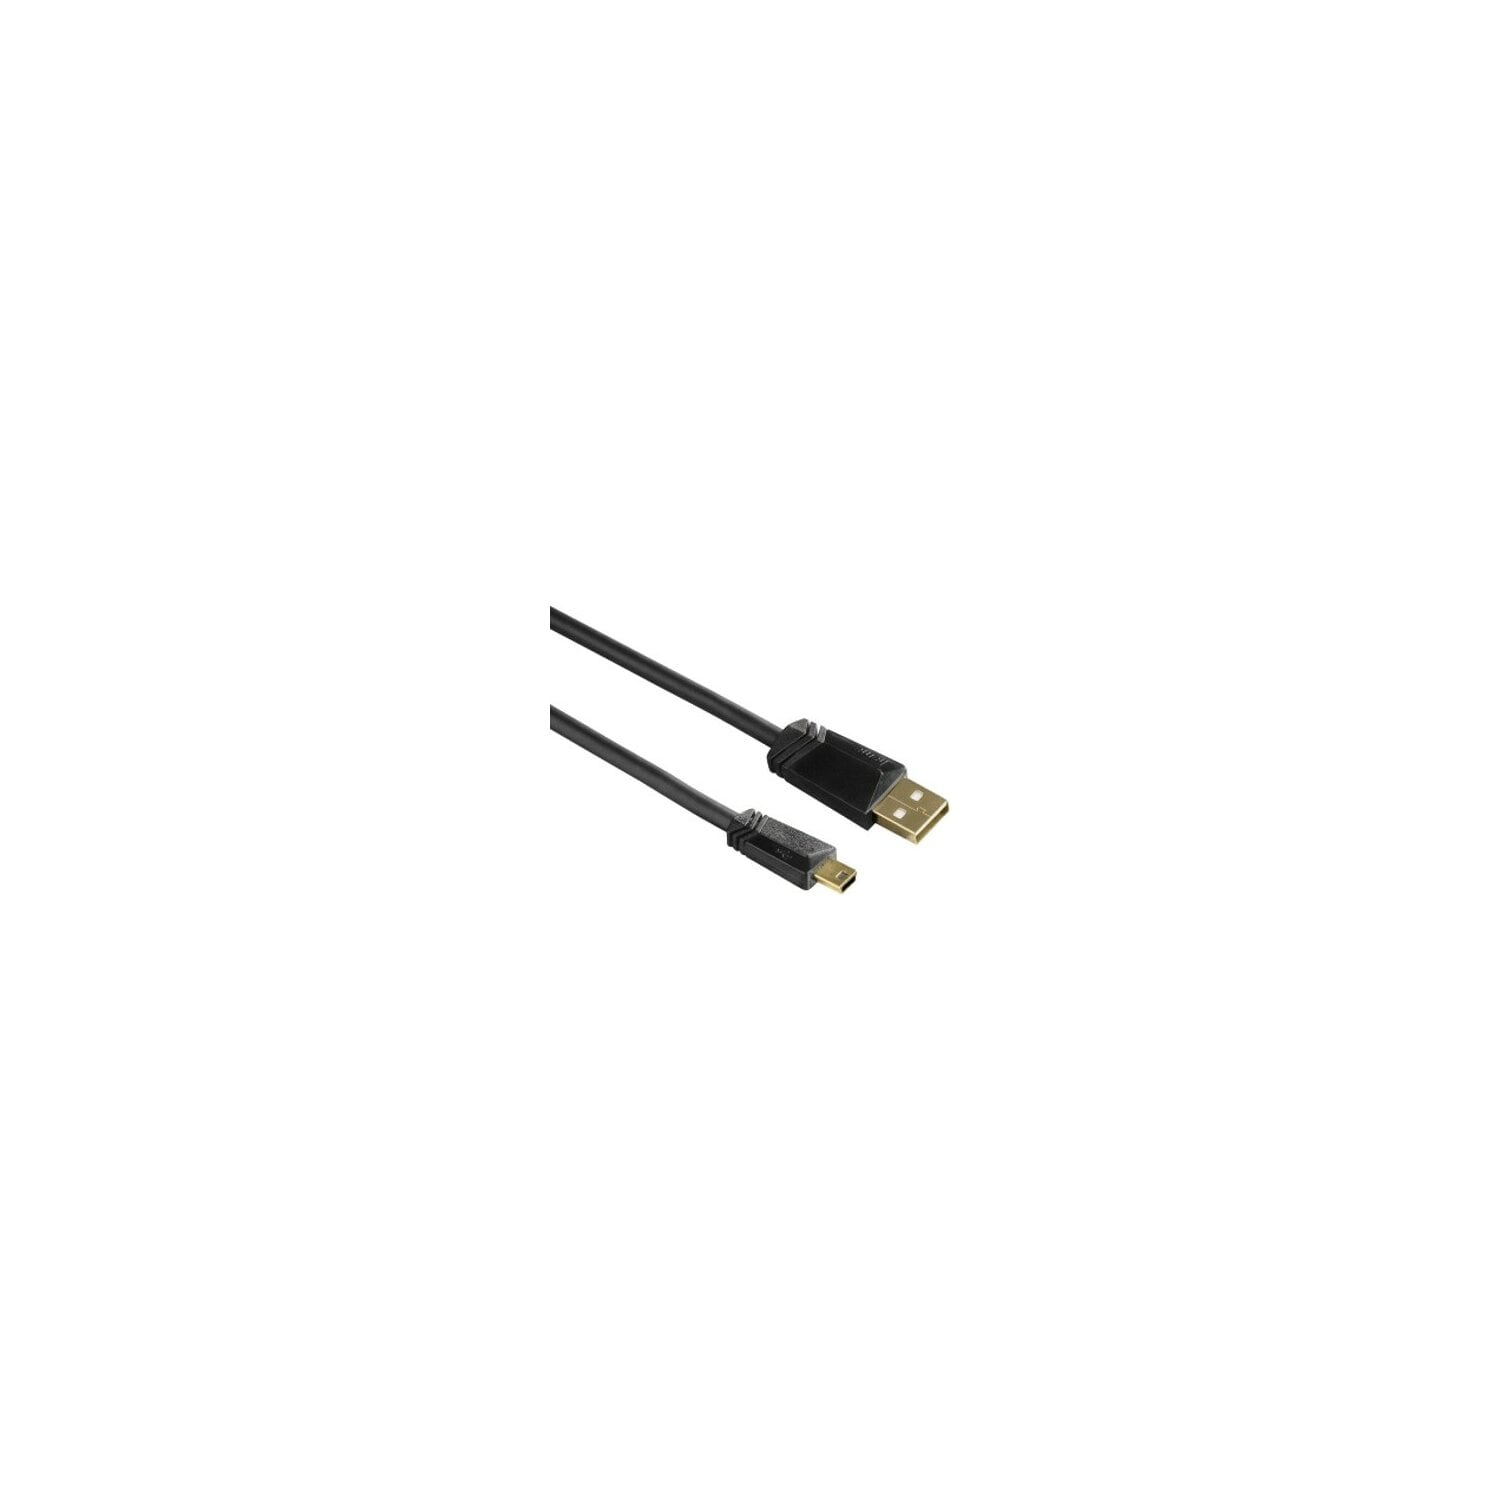 Kabel HAMA Techline USB 2.0 USB A - Mini USB B 1.5 m